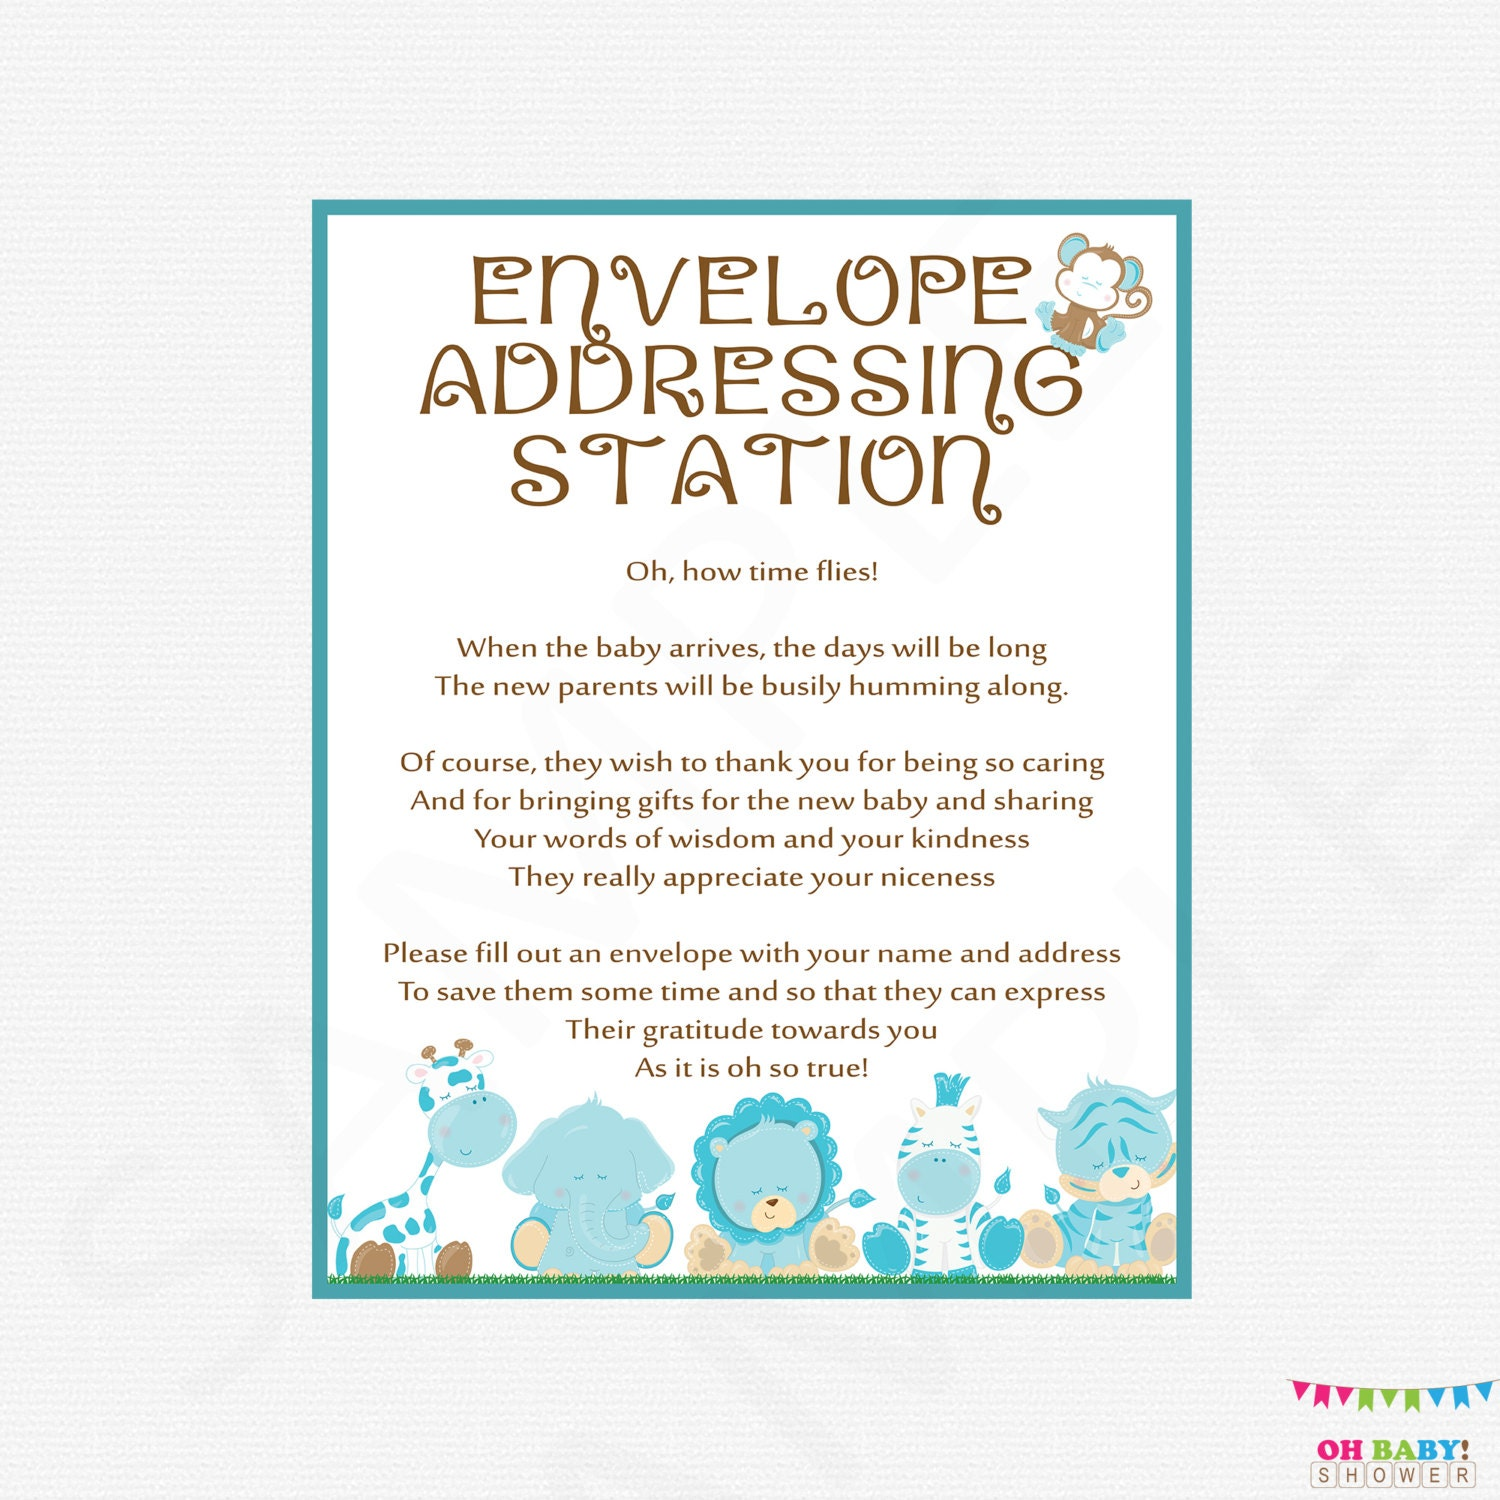 Bridal Shower Invitation Envelope Addressing Etiquette was adorable invitation template